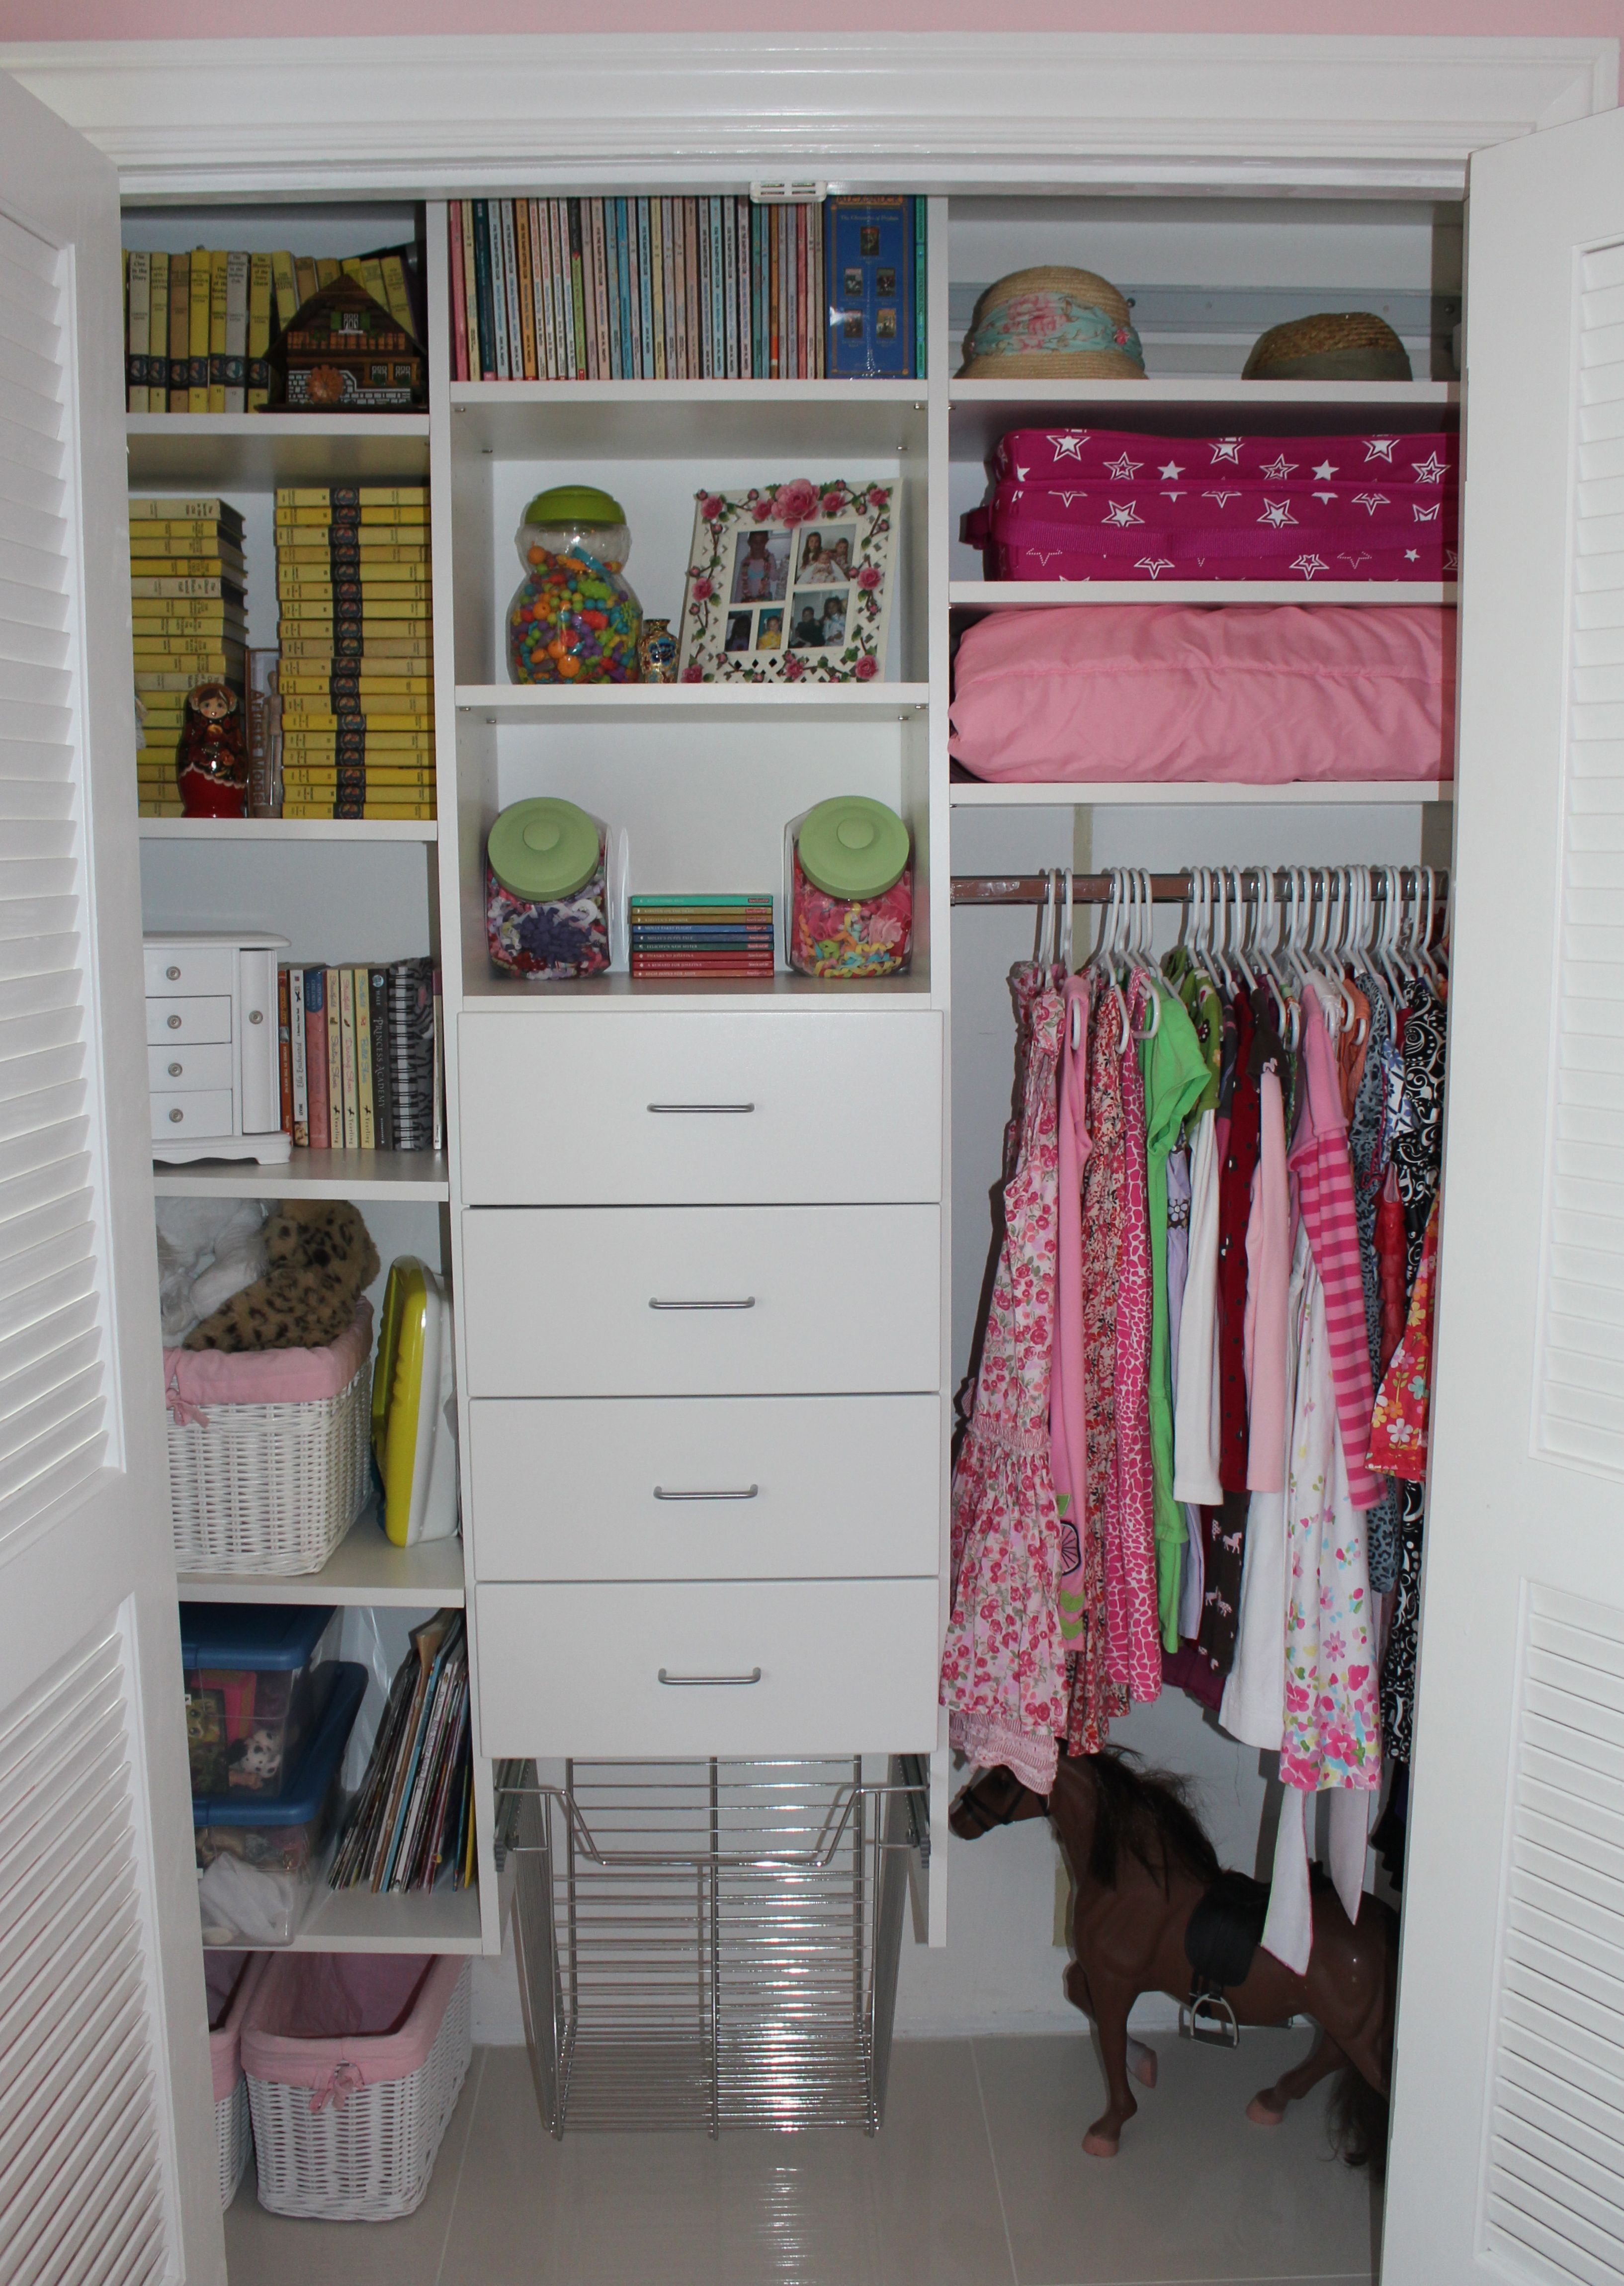 Delightful Closet Organizer Ideas For Small Closets Part - 12: Outstanding Closet Storage Ideas For Small Closets 3267 X 4599 · 4118 KB ·  Jpeg